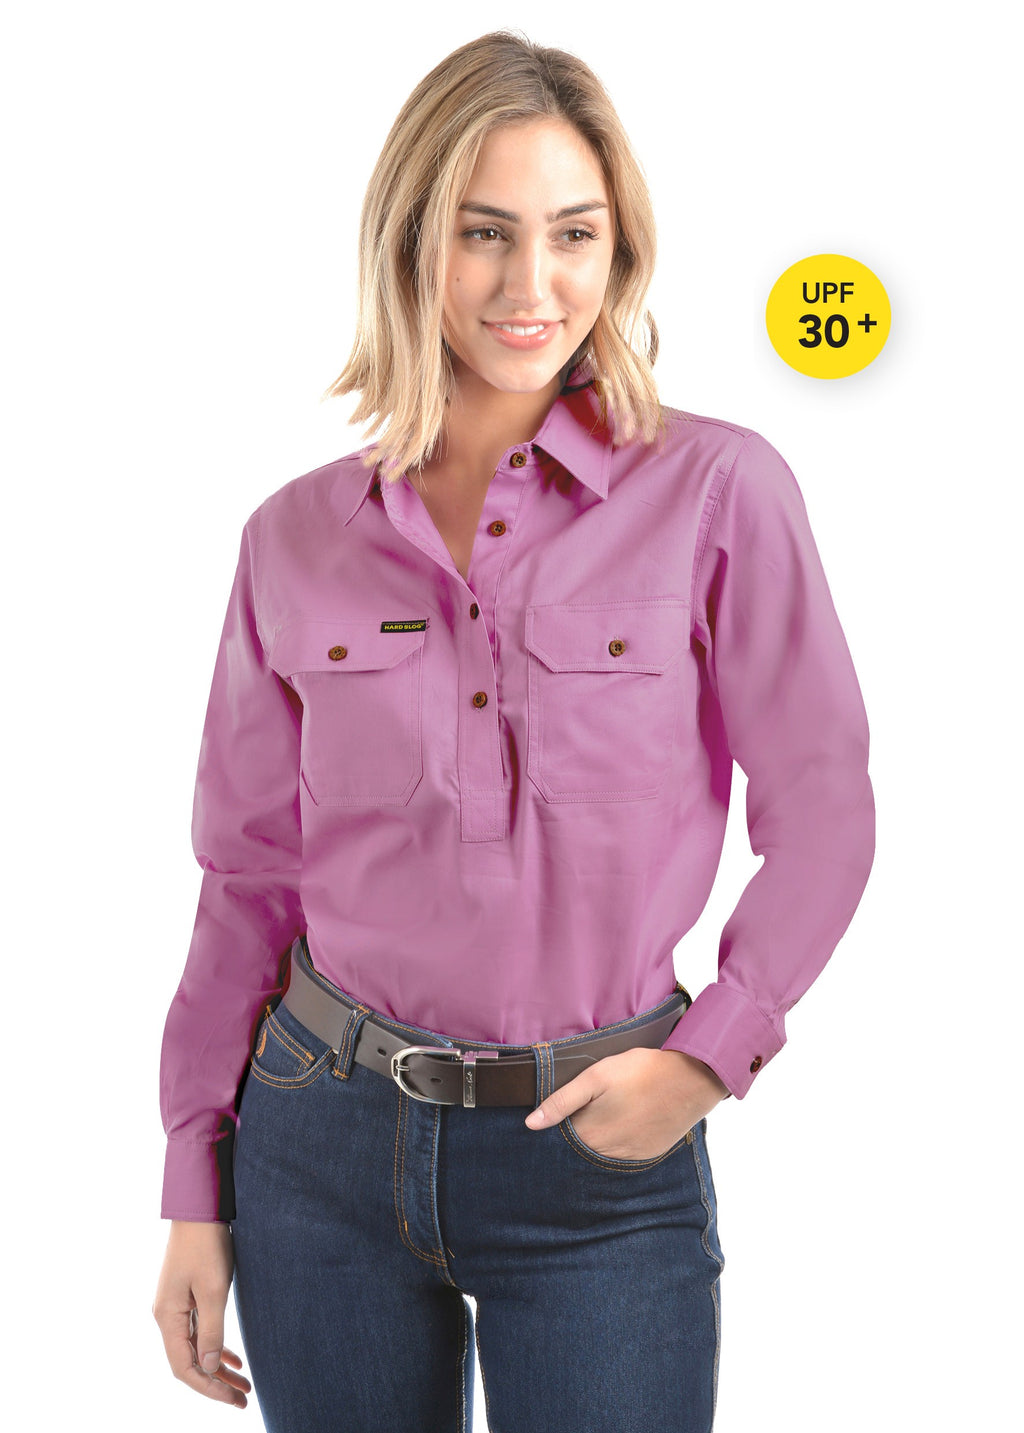 Womens Half Placket Light Cotton Shirt Violet